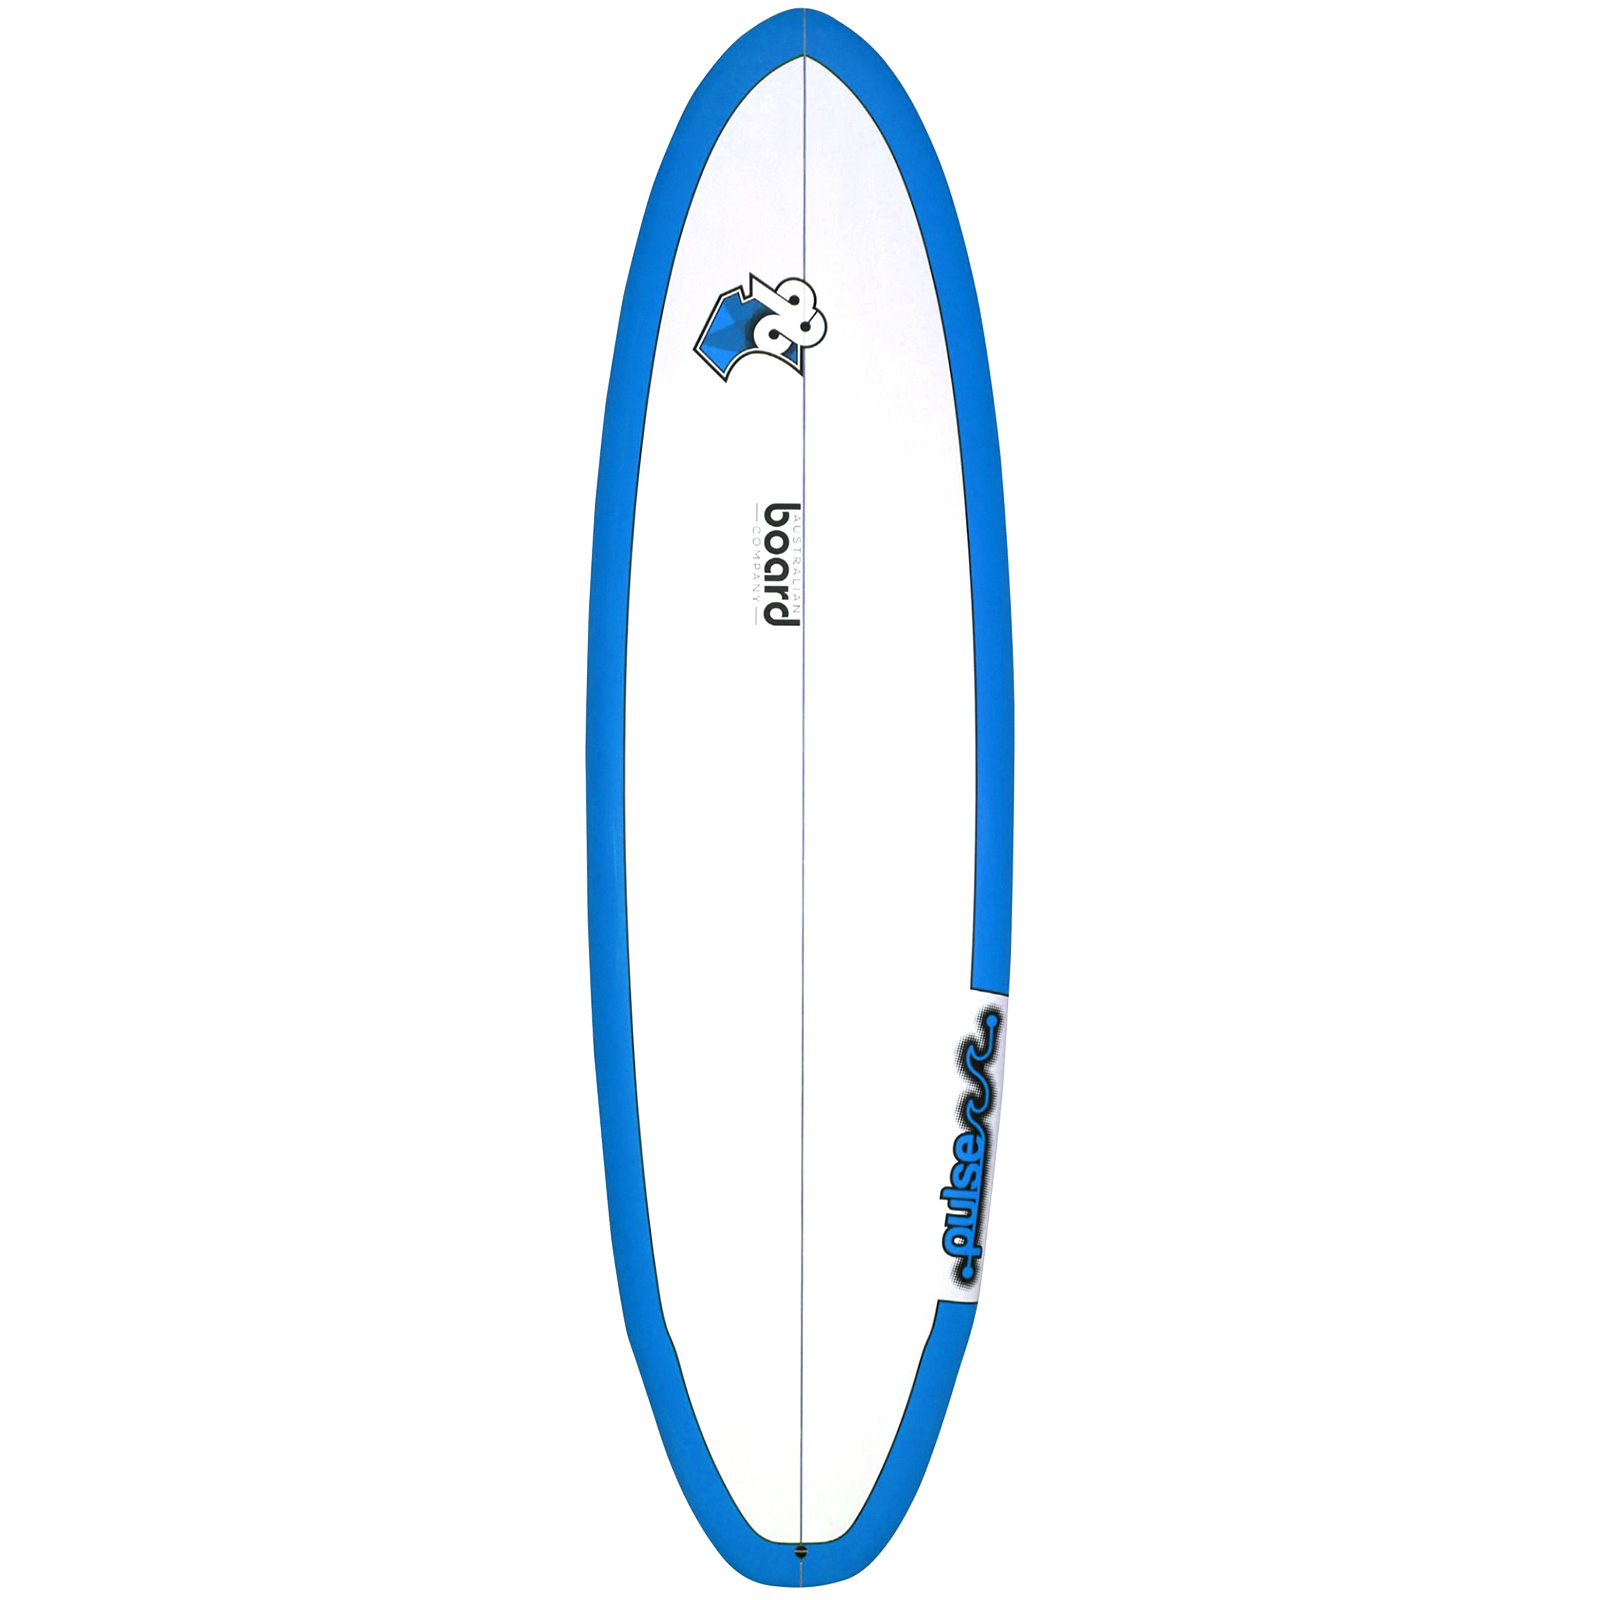 6ft 6inch Pulse Series Wing Round Square Tail Shortboard Surfboard by Australian Board Company (ABC) - Matt Finish